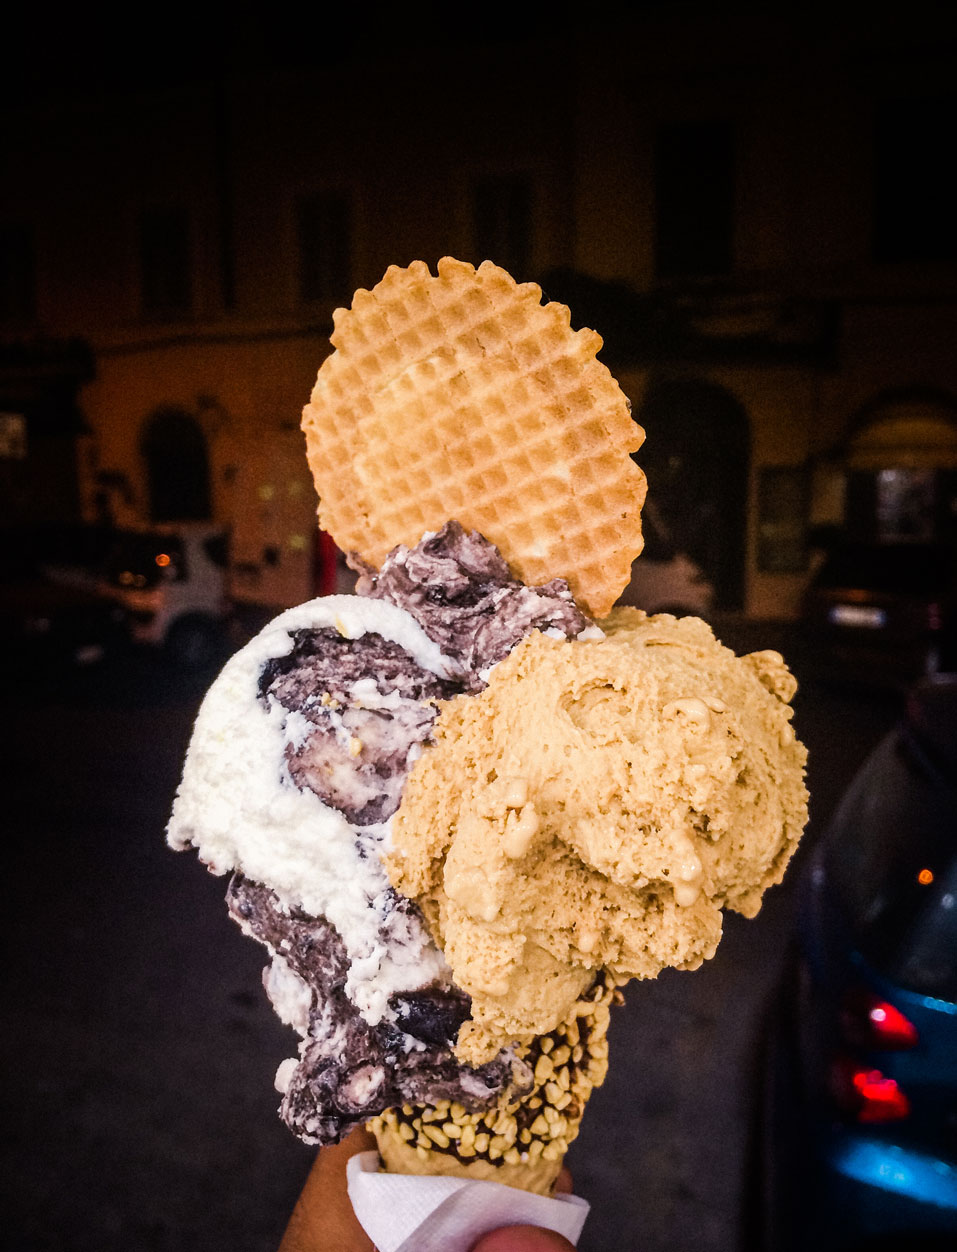 Rome gelato game on point. Texture, dimension, depth.